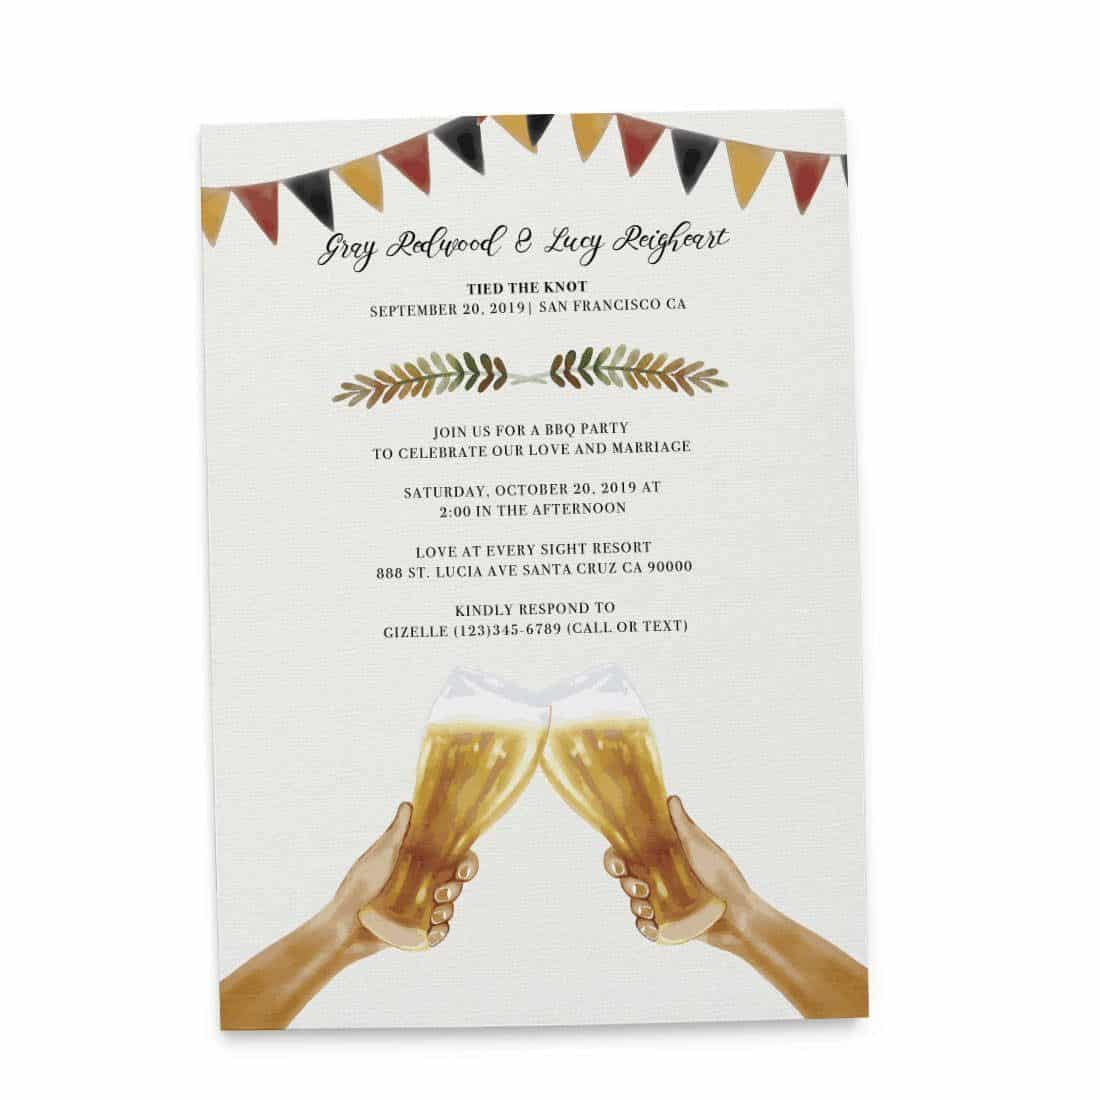 Tied The Knot BBQ Casual Party Invitation Cards Wedding Elopement